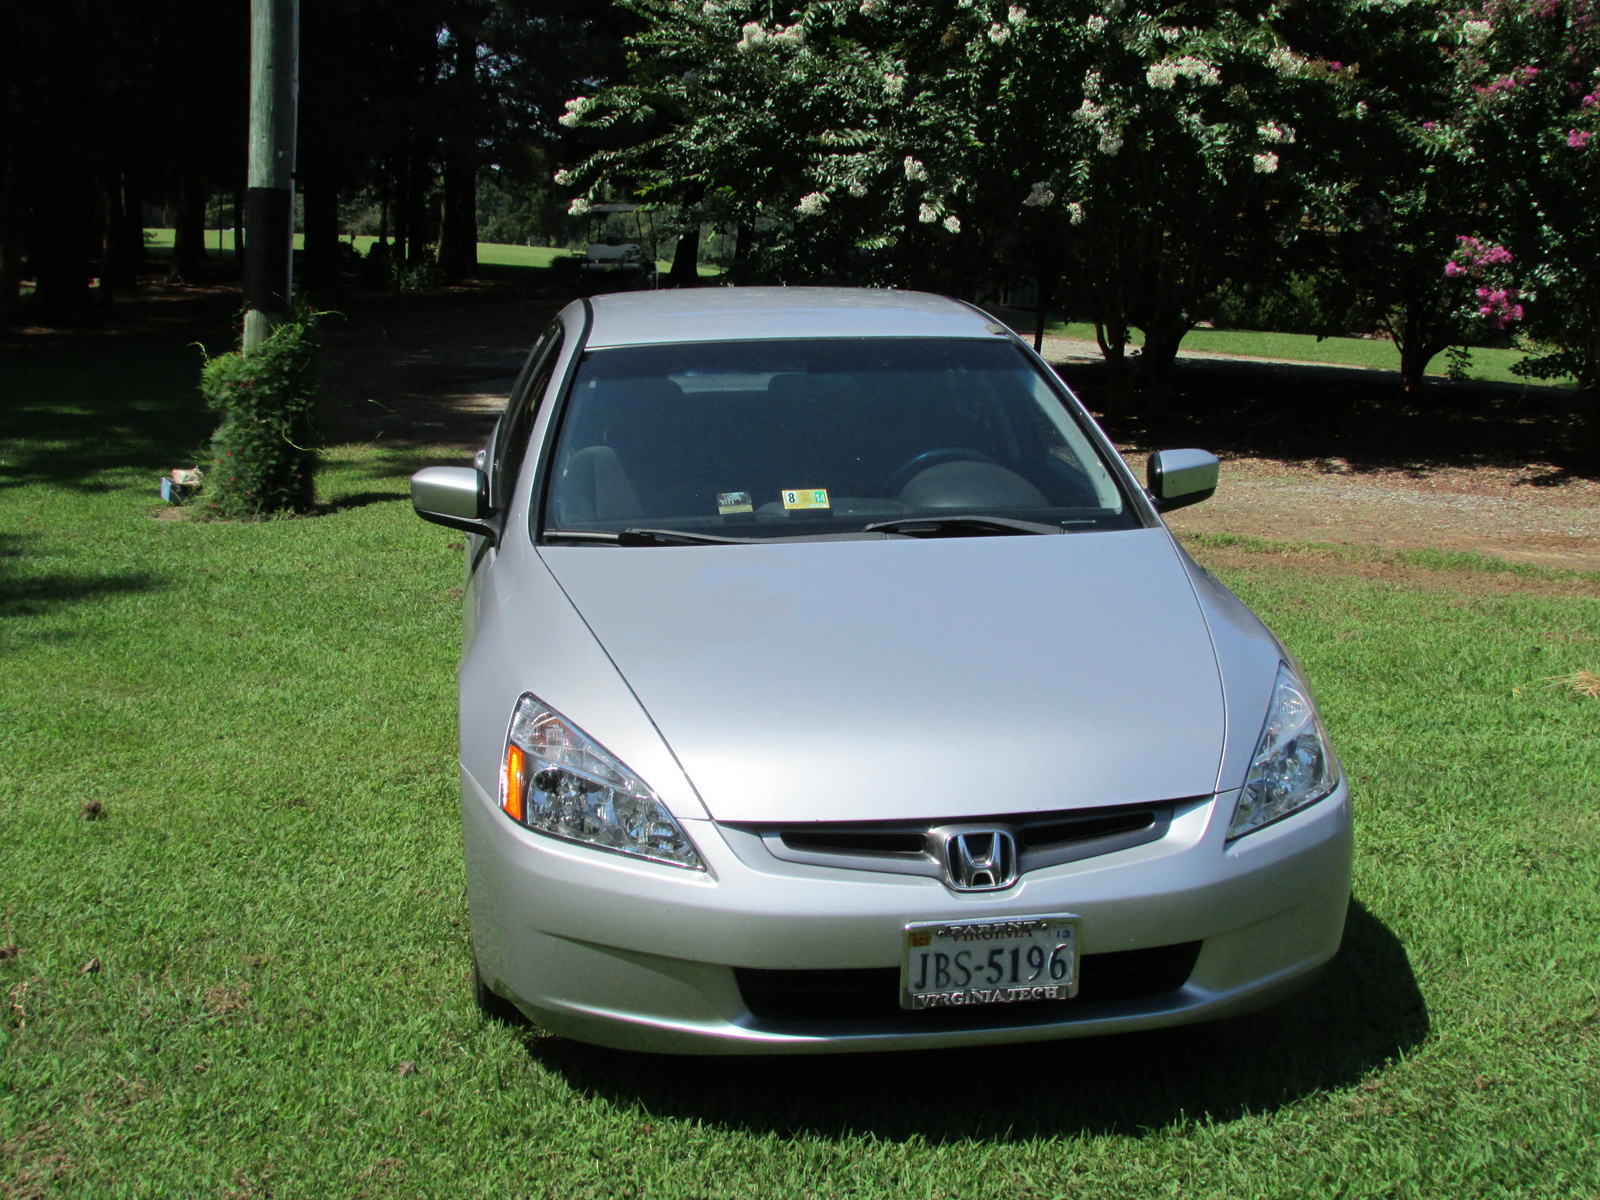 of 2004 honda accord lx v6 view garage bwhall owns this honda accord. Black Bedroom Furniture Sets. Home Design Ideas